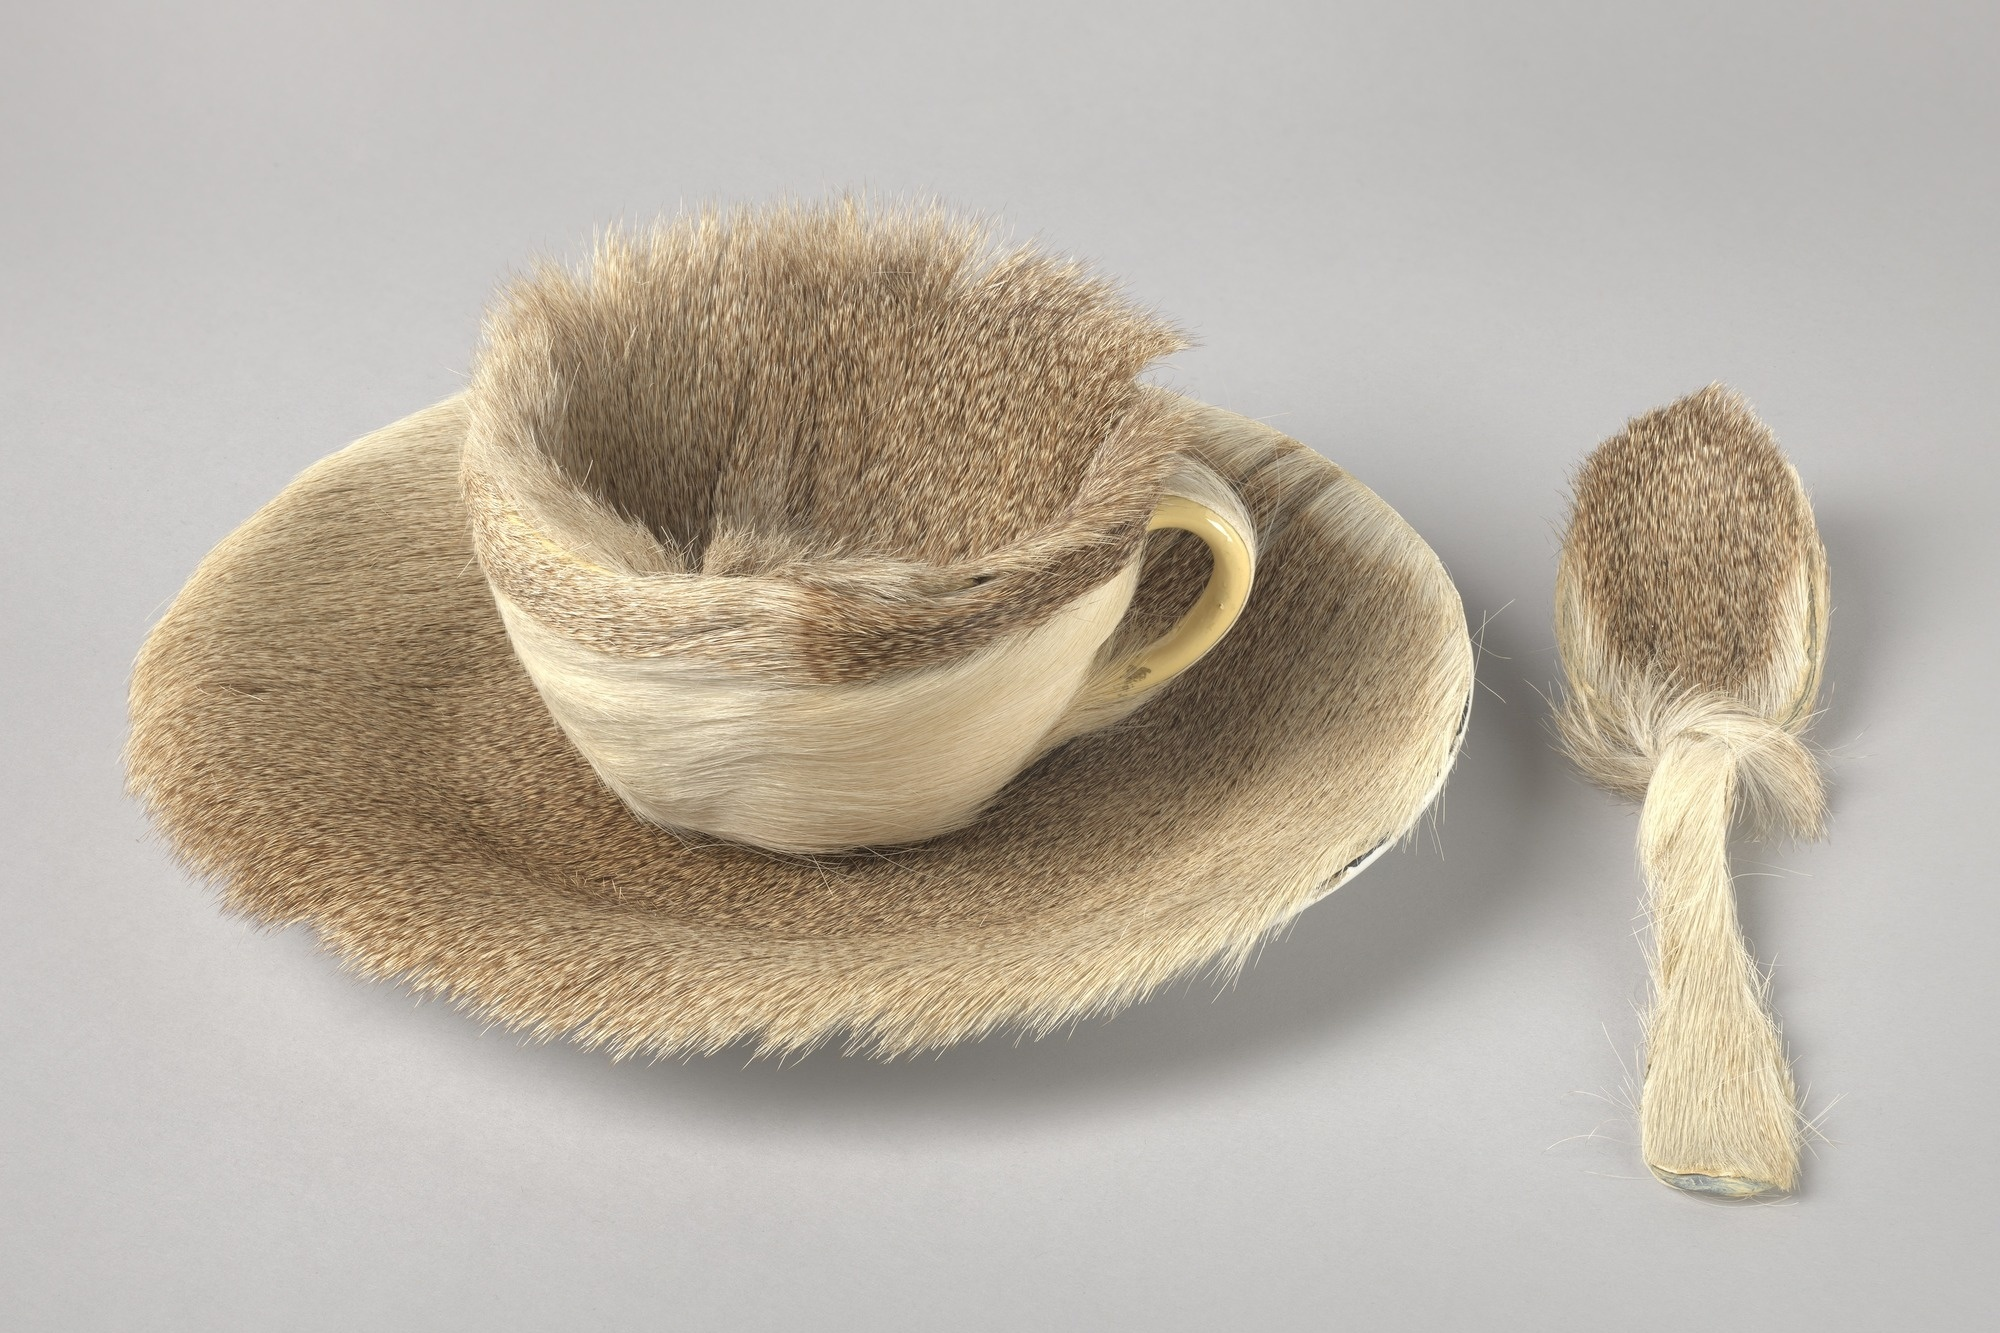 "Meret Oppenheim. Object. 1936. Fur-covered cup, saucer, and spoon; cup 4 3/8"" (10.9 cm) in diameter; saucer 9 3/8"" (23.7 cm) in diameter; spoon 8"" (20.2 cm) long, overall height 2 7/8"" (7.3 cm). Purchase. © 2019 Artists Rights Society (ARS), New York/Pro Litteris, Zurich"